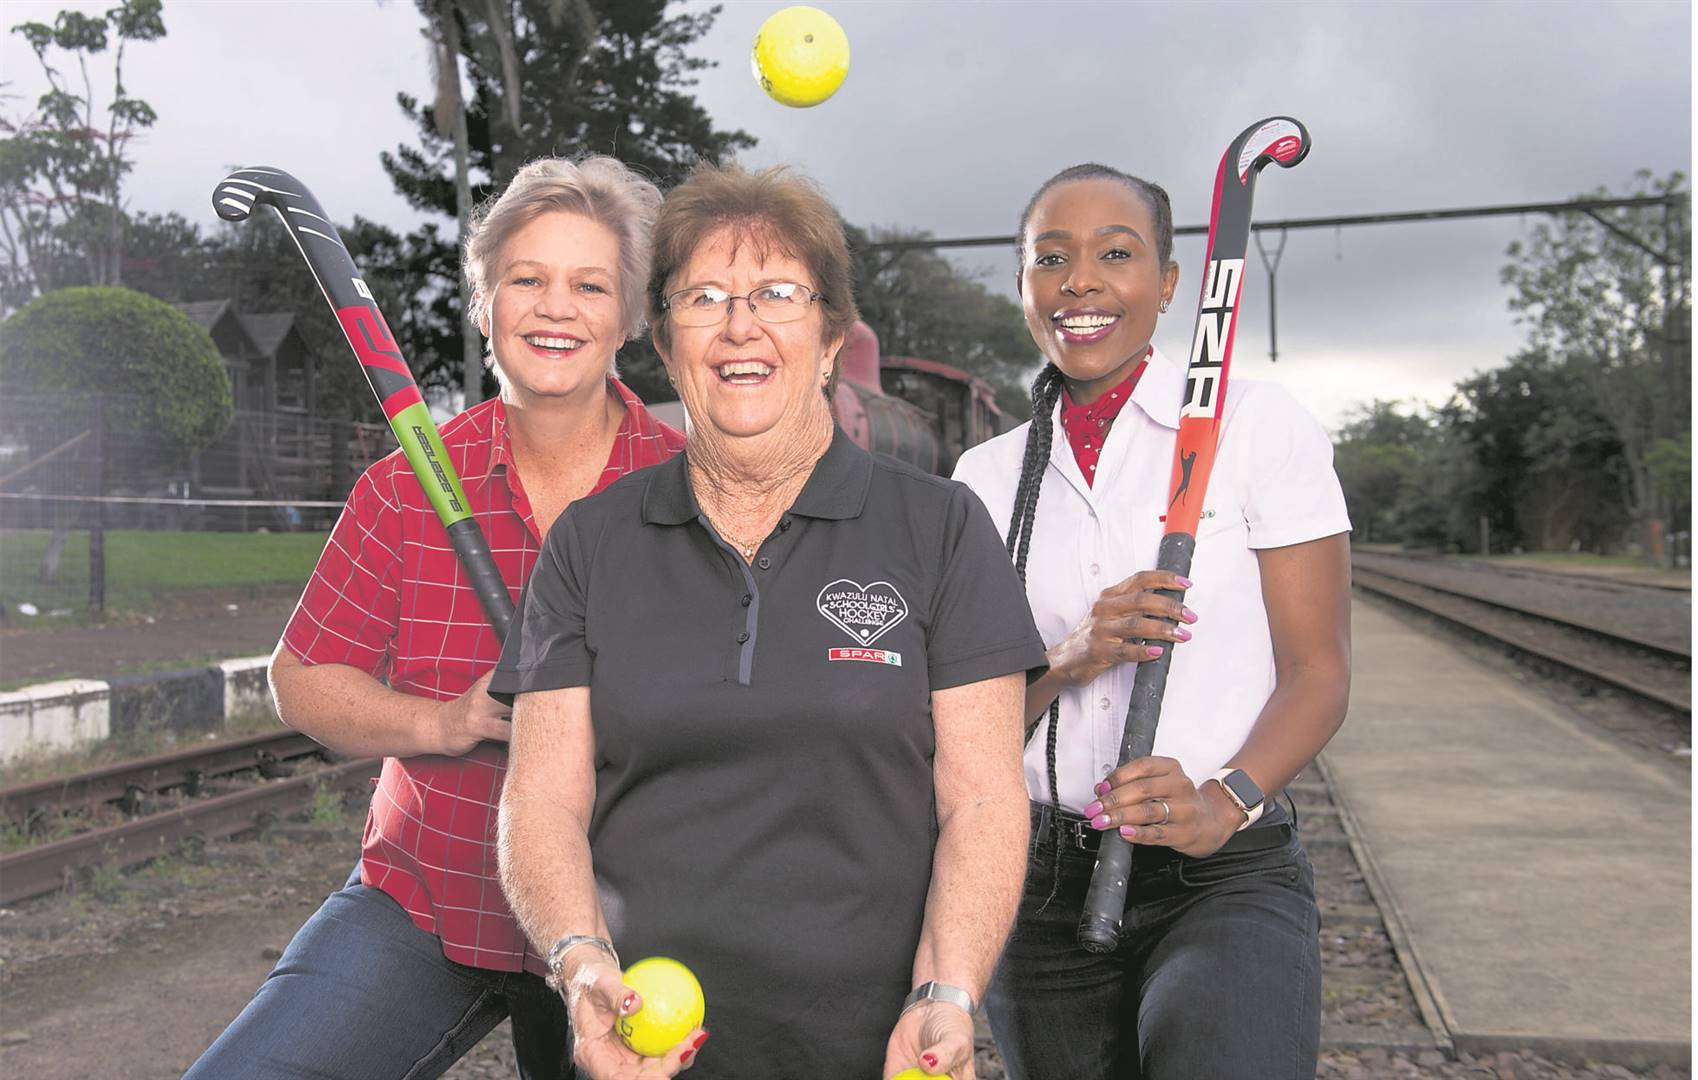 photo: val adamsonBack on track after juggling schedules and Covid-19 regulations, the SPAR KZN Schoolgirls' Hockey Challenge kicks off on the first weekend of May. Celebrating the announcement are Claire Hogg, Sponsorships Controller from SPAR KZN, Tournament Director Les Galloway from Schoolgirls Sports and Nozi Mkhize, Advertising and Sponsorship Manager for SPAR KZN.